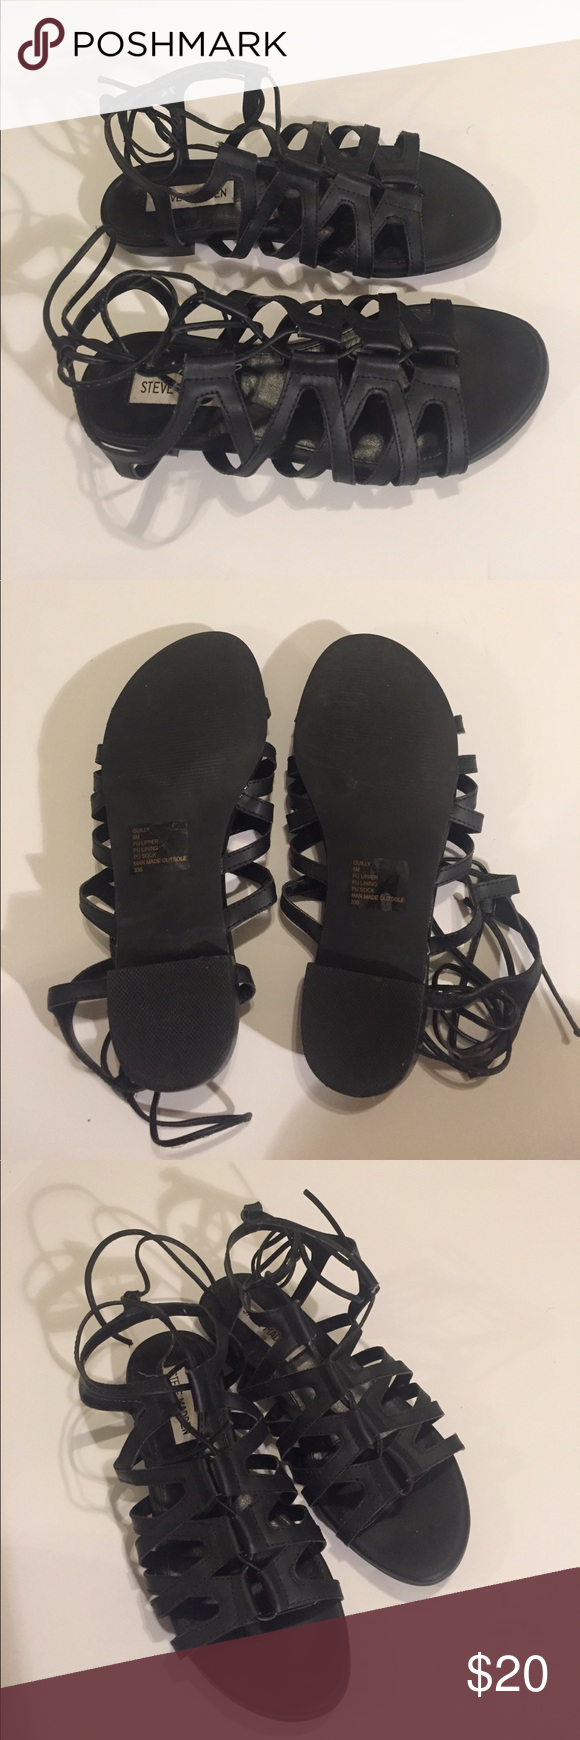 Steve Madden Sandals Black Steve Madden Sandals (worn only once). You can tie up and adjust to ankle. Steve Madden Shoes Sandals